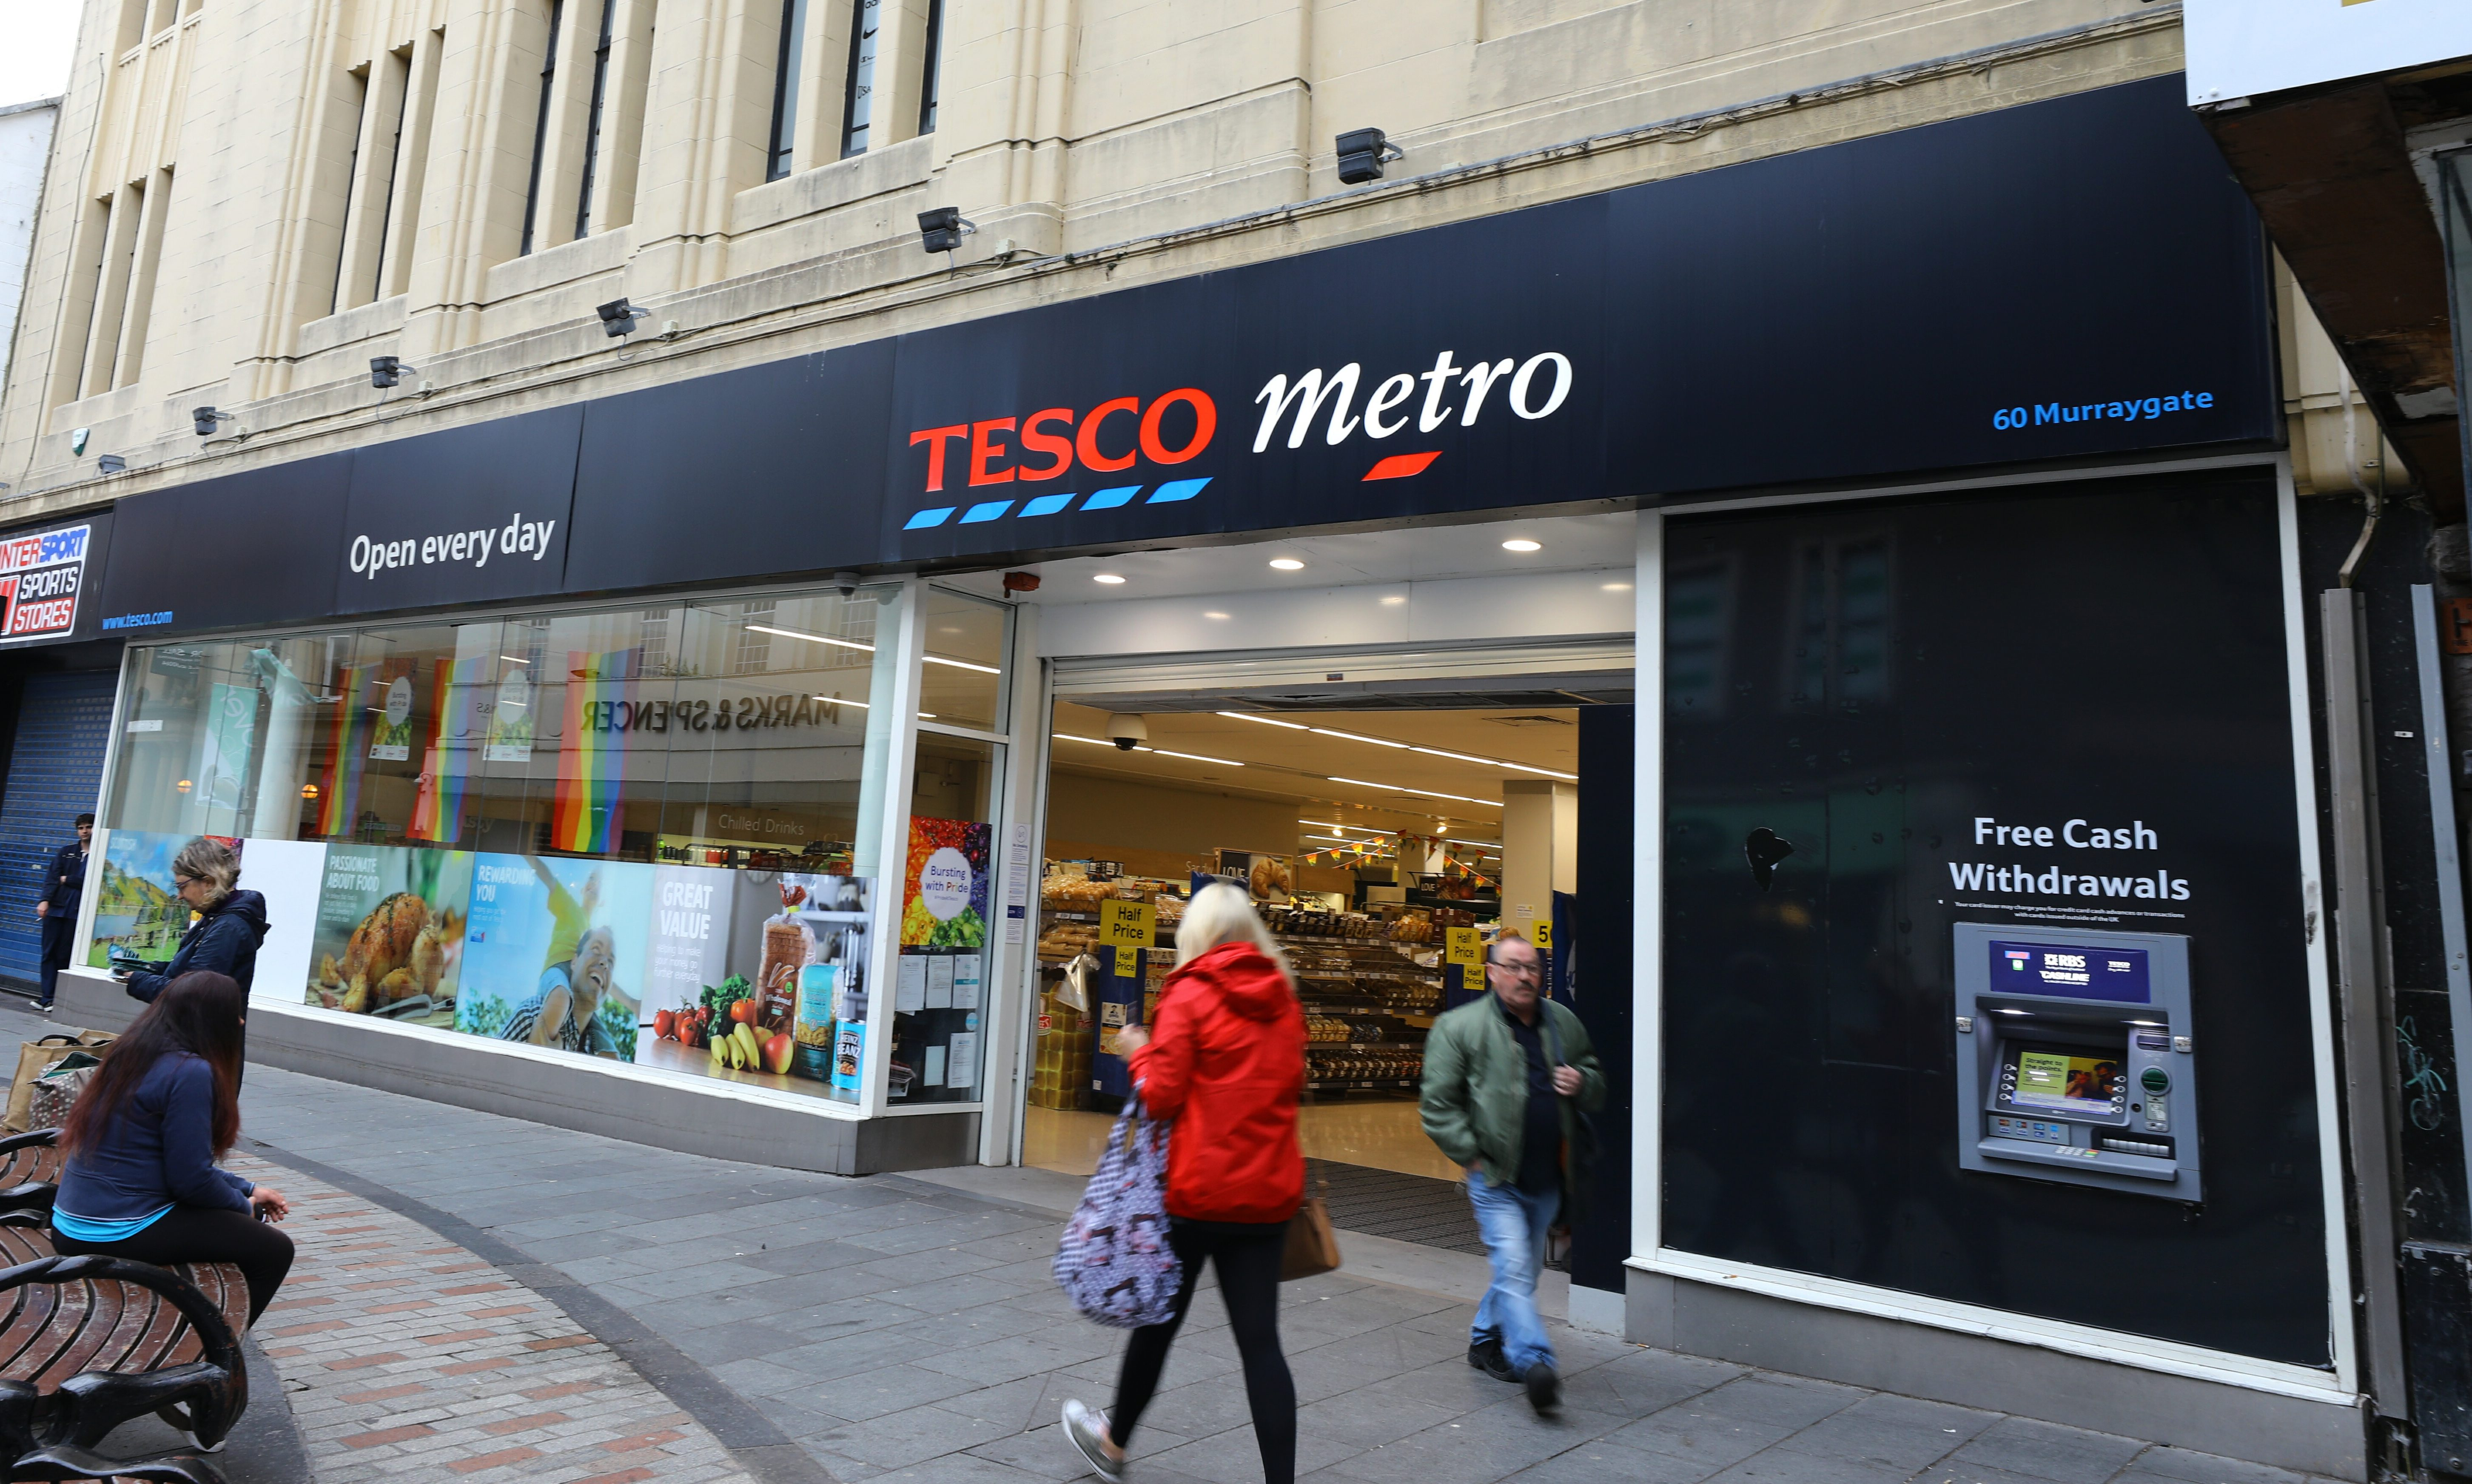 The Tesco Metro store in the Murraygate which closed in November.